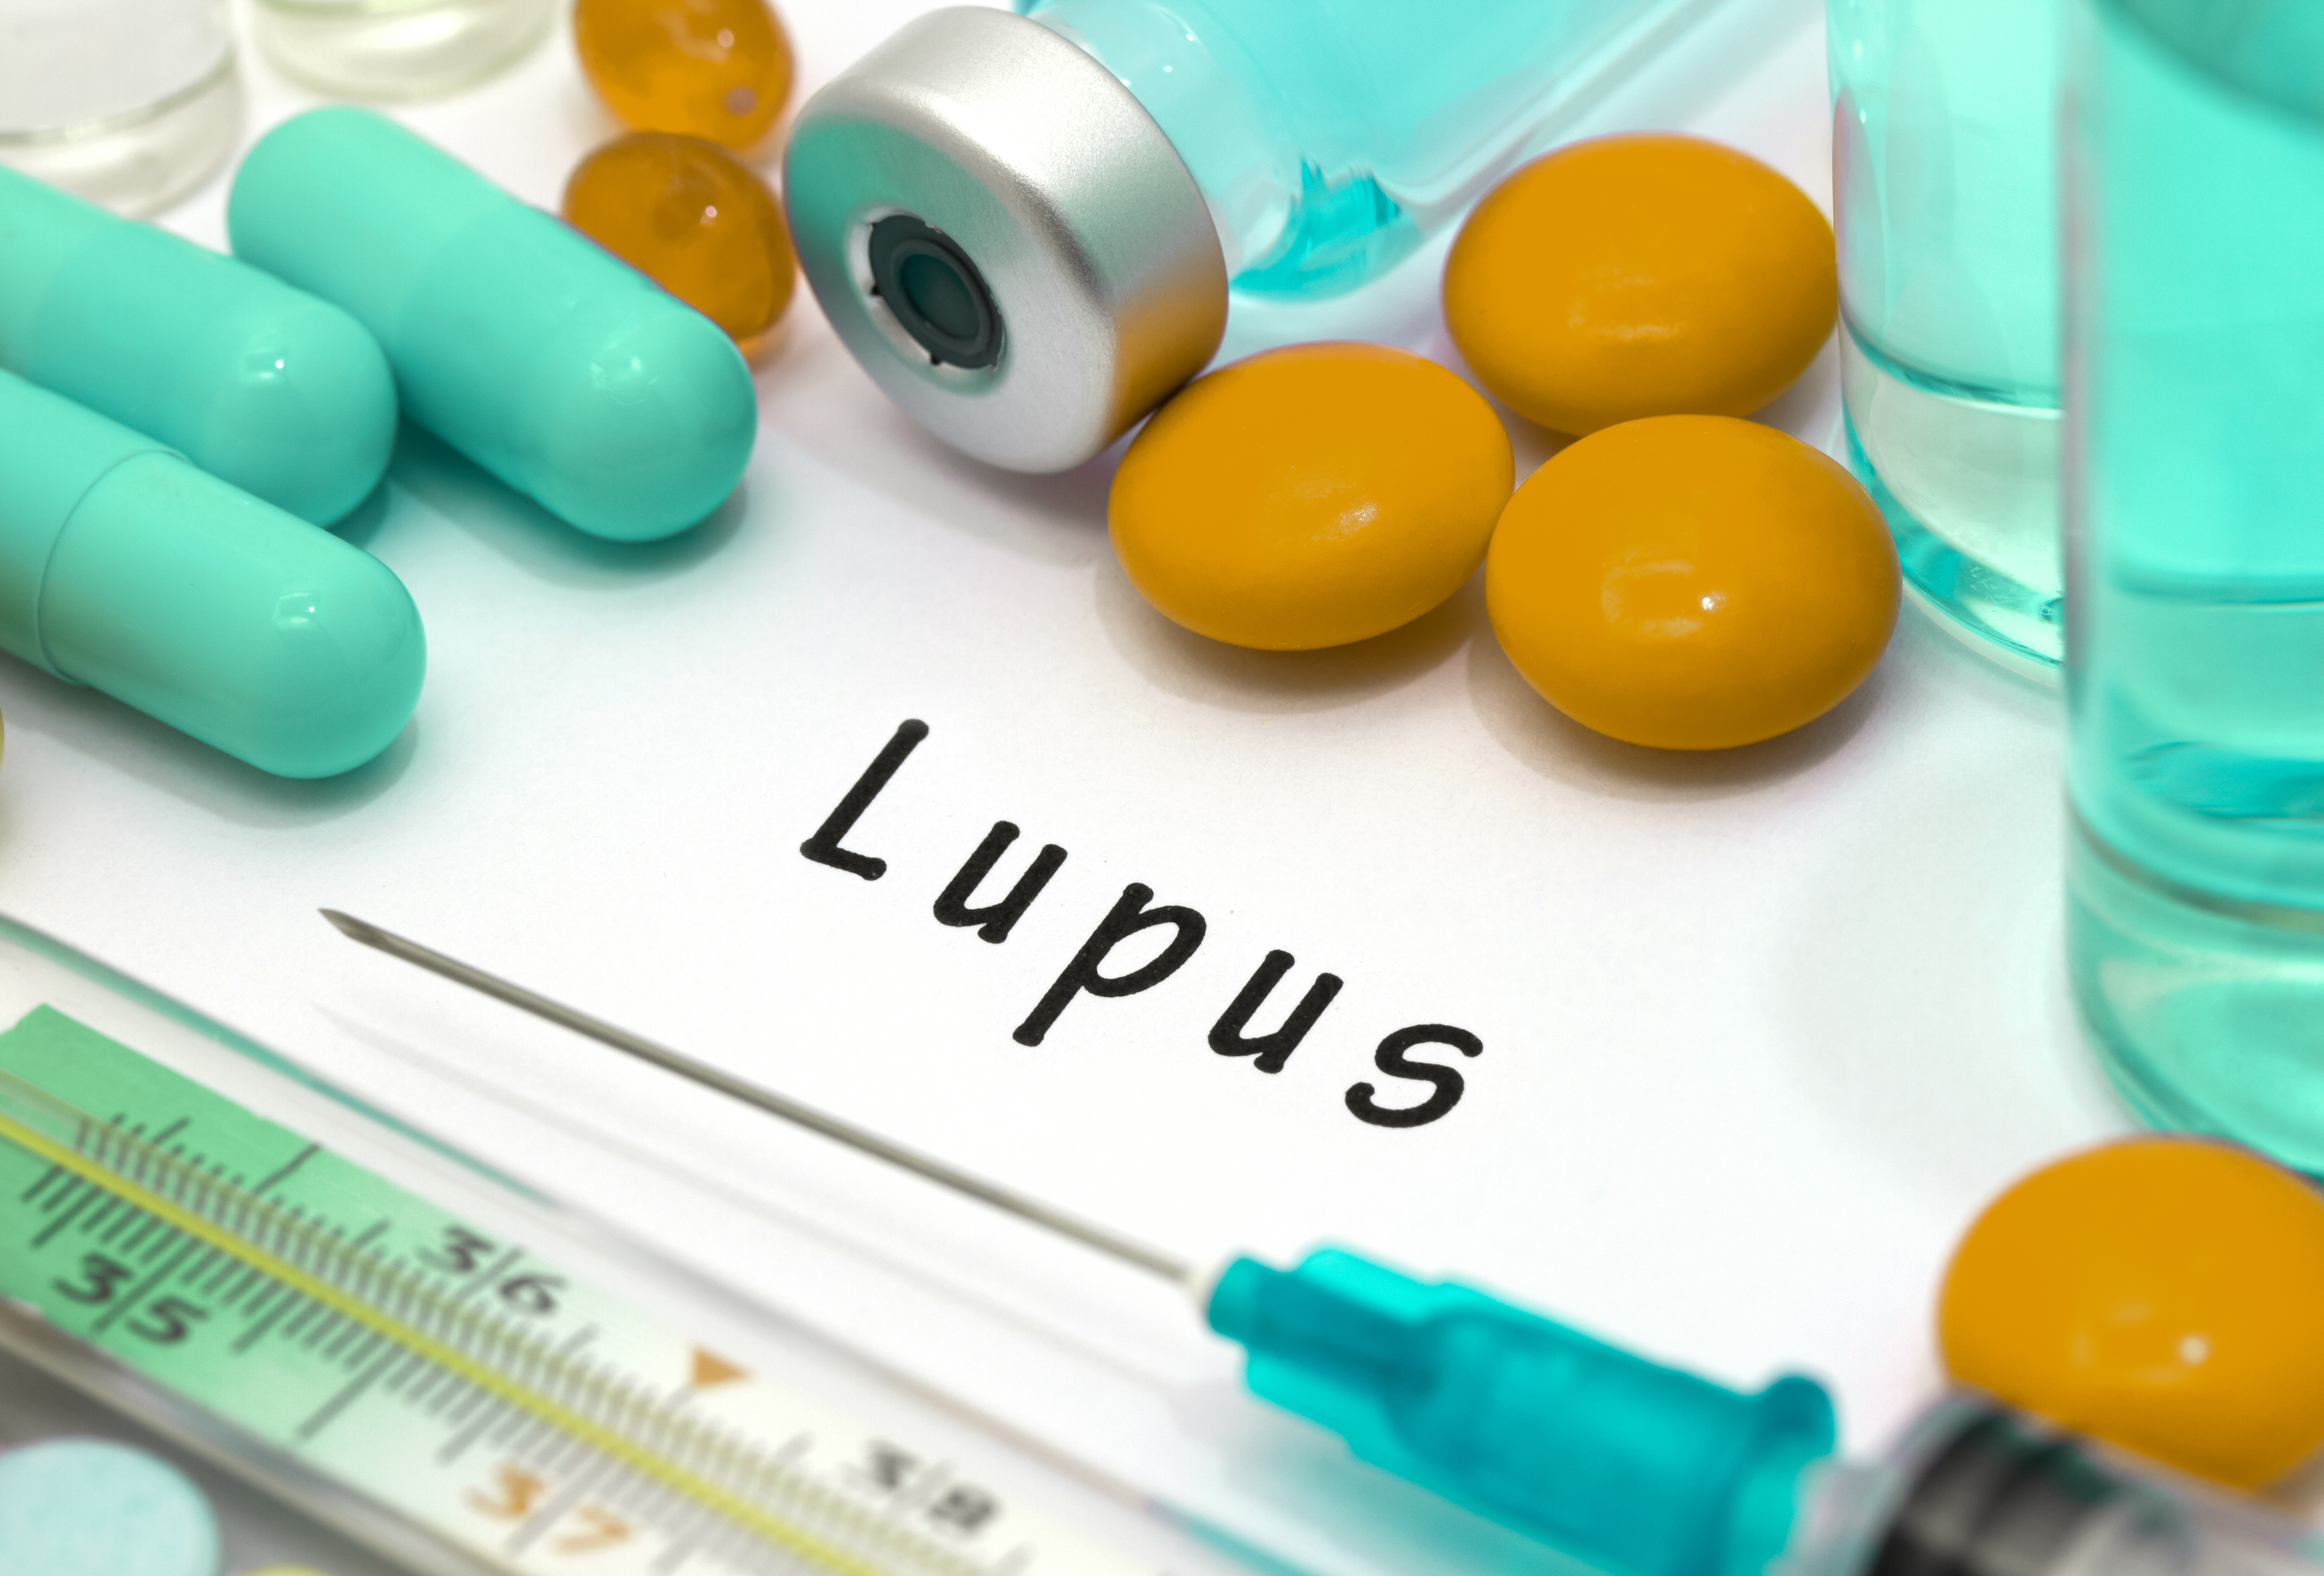 Debunking invisible illnesses: Lupus (Part 2)